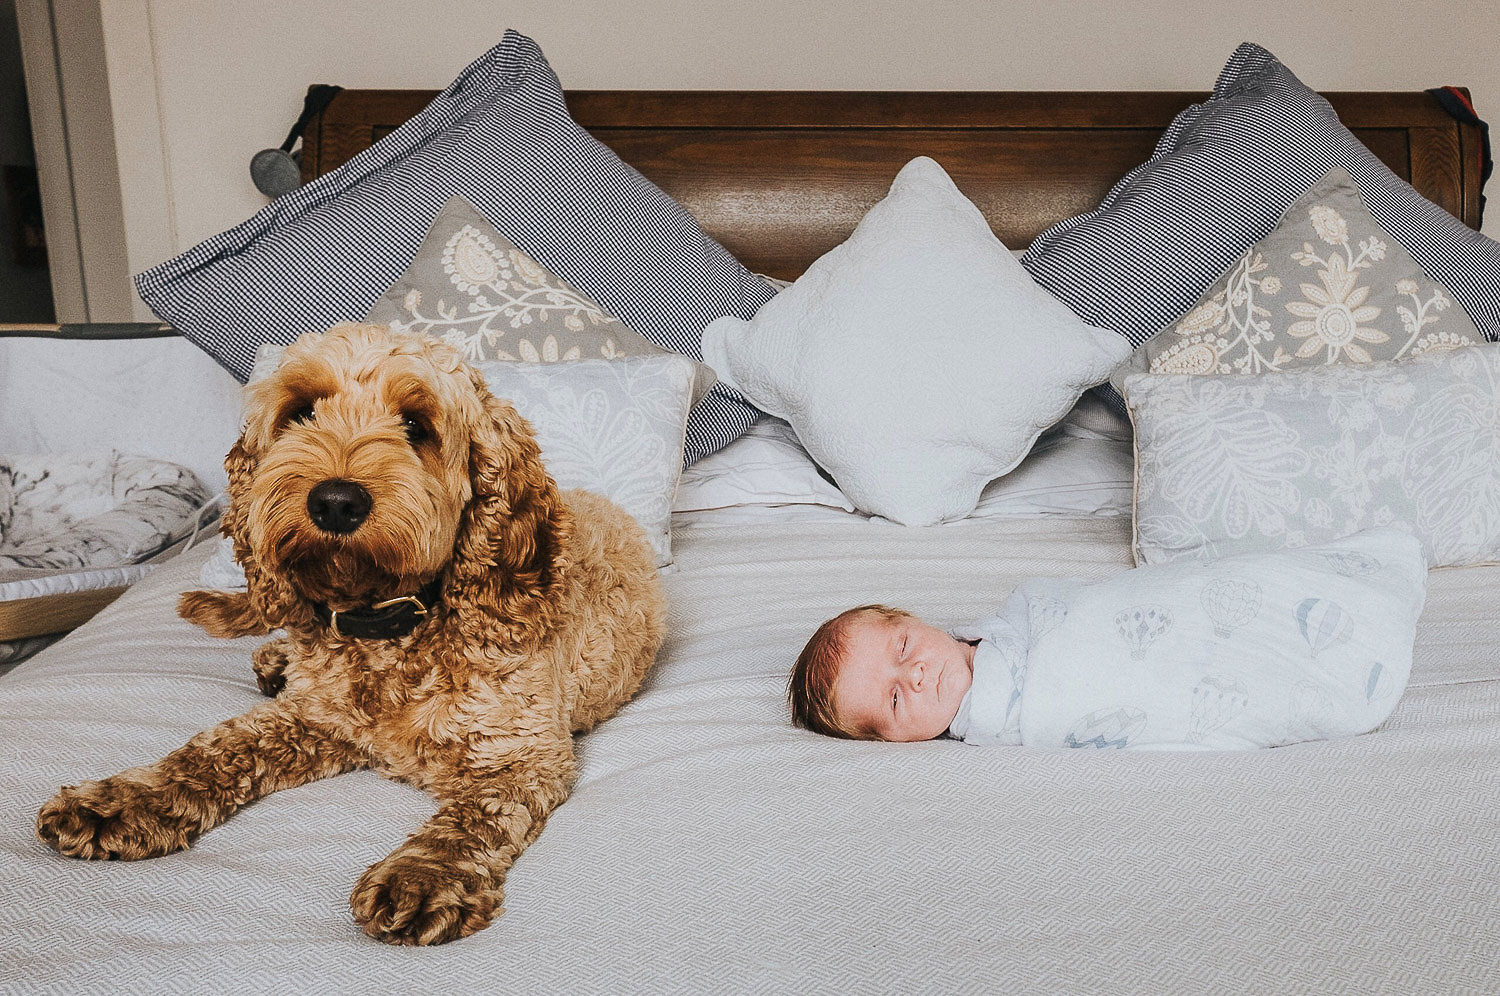 Dog with newborn baby photo shoot at home